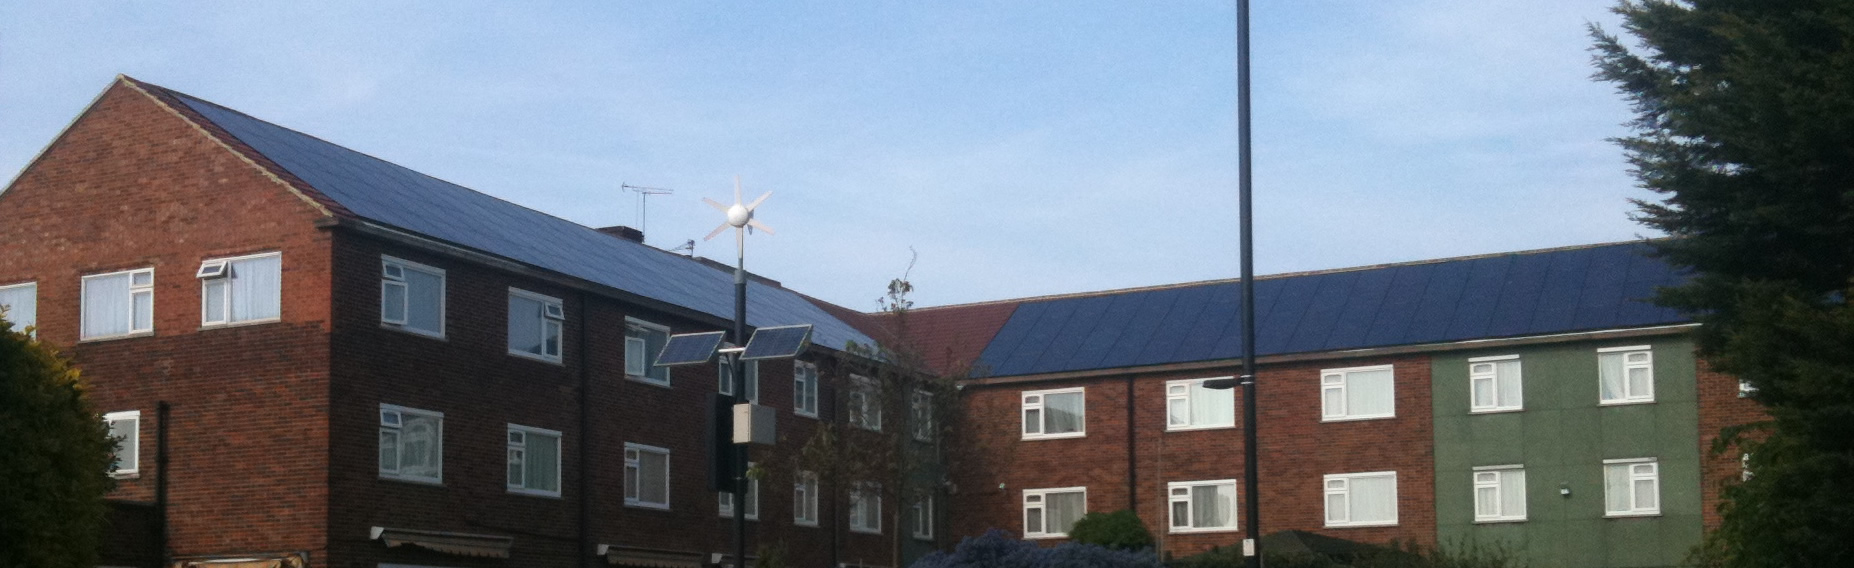 Solar Pv Case Study Residential Care Home West London